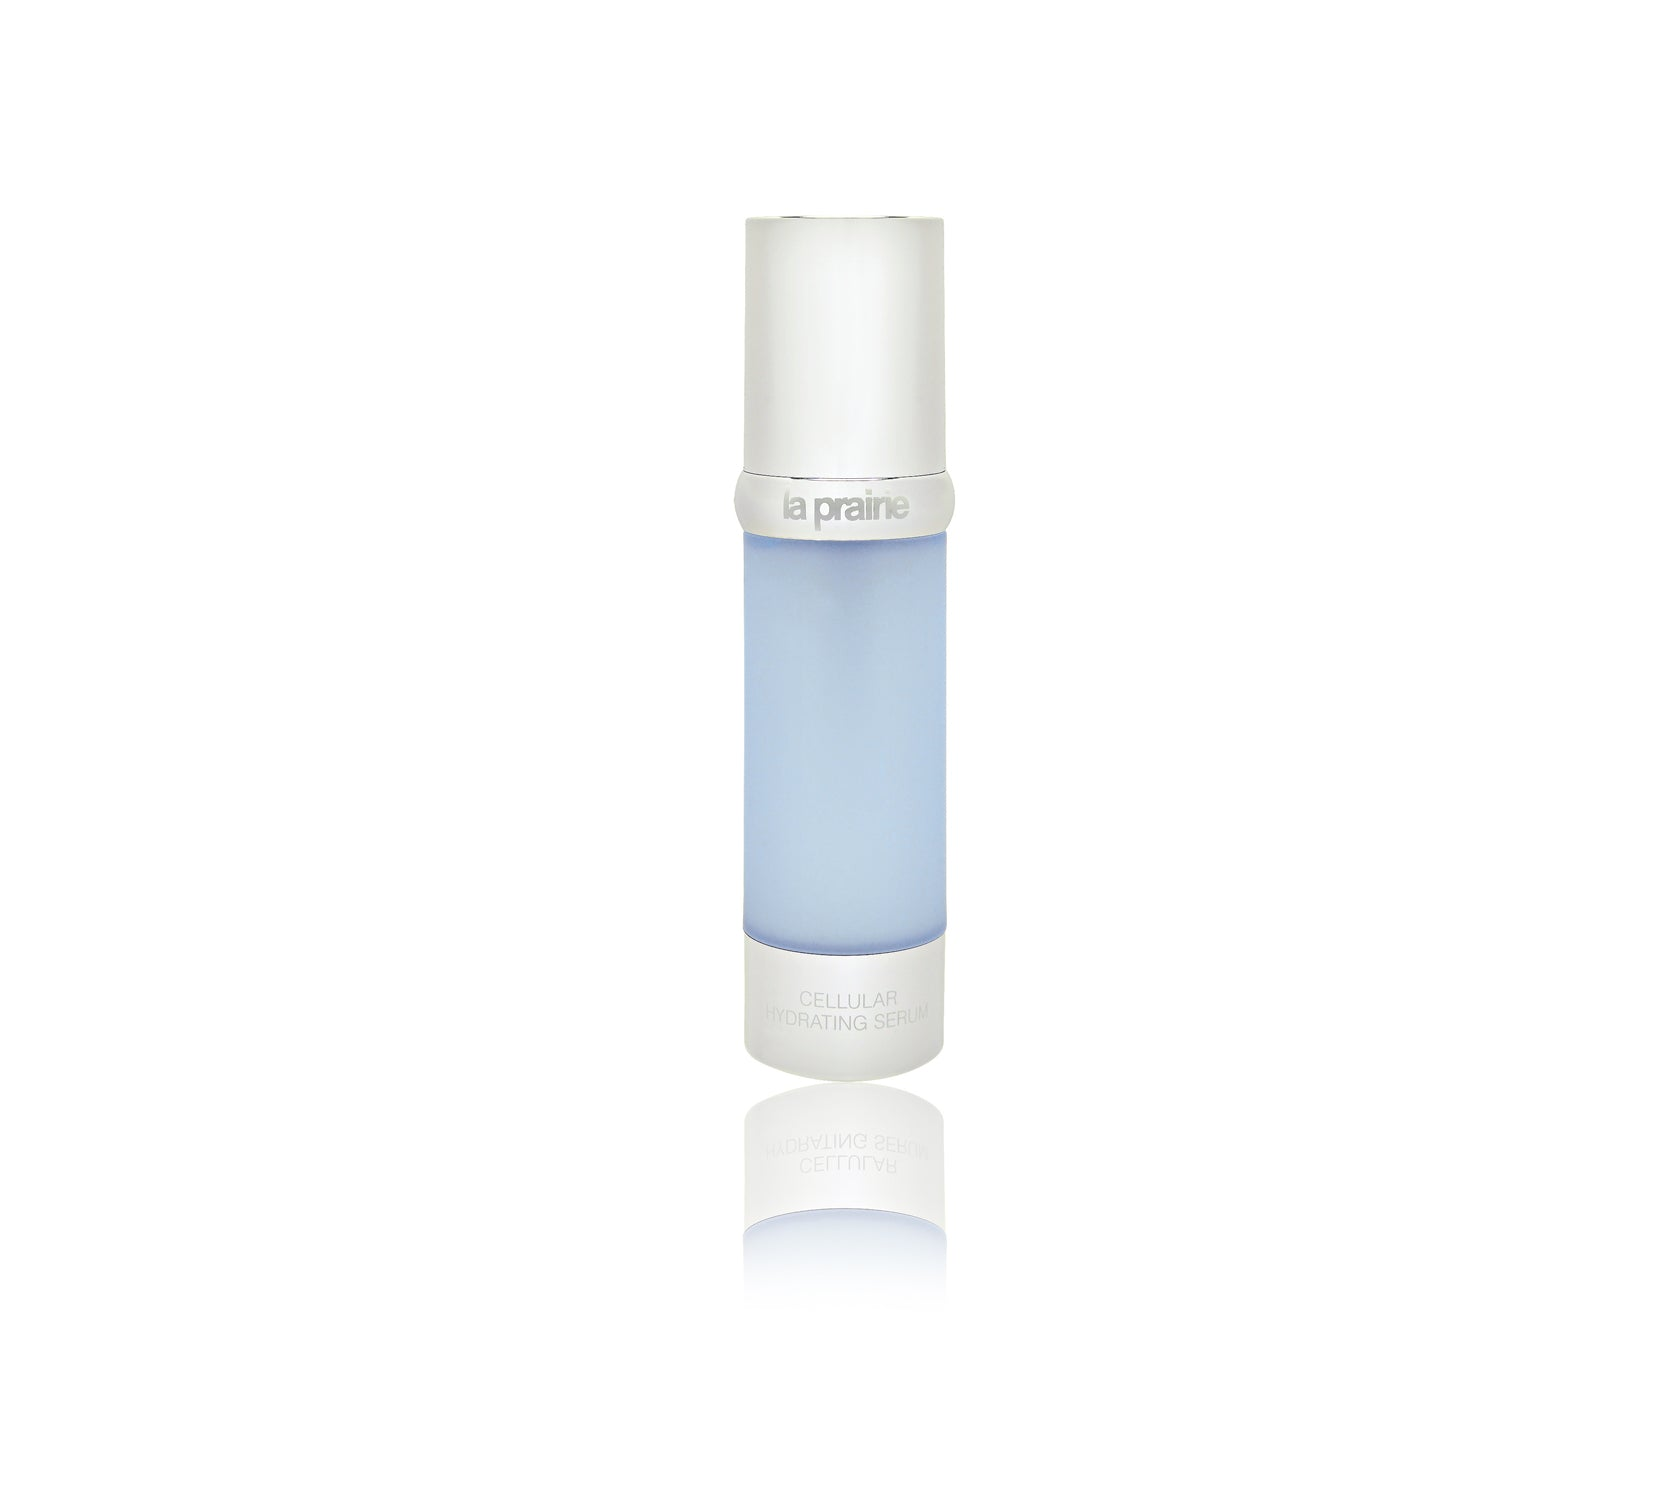 suiss-cellular-de-ag-cellular-hydrating-serum